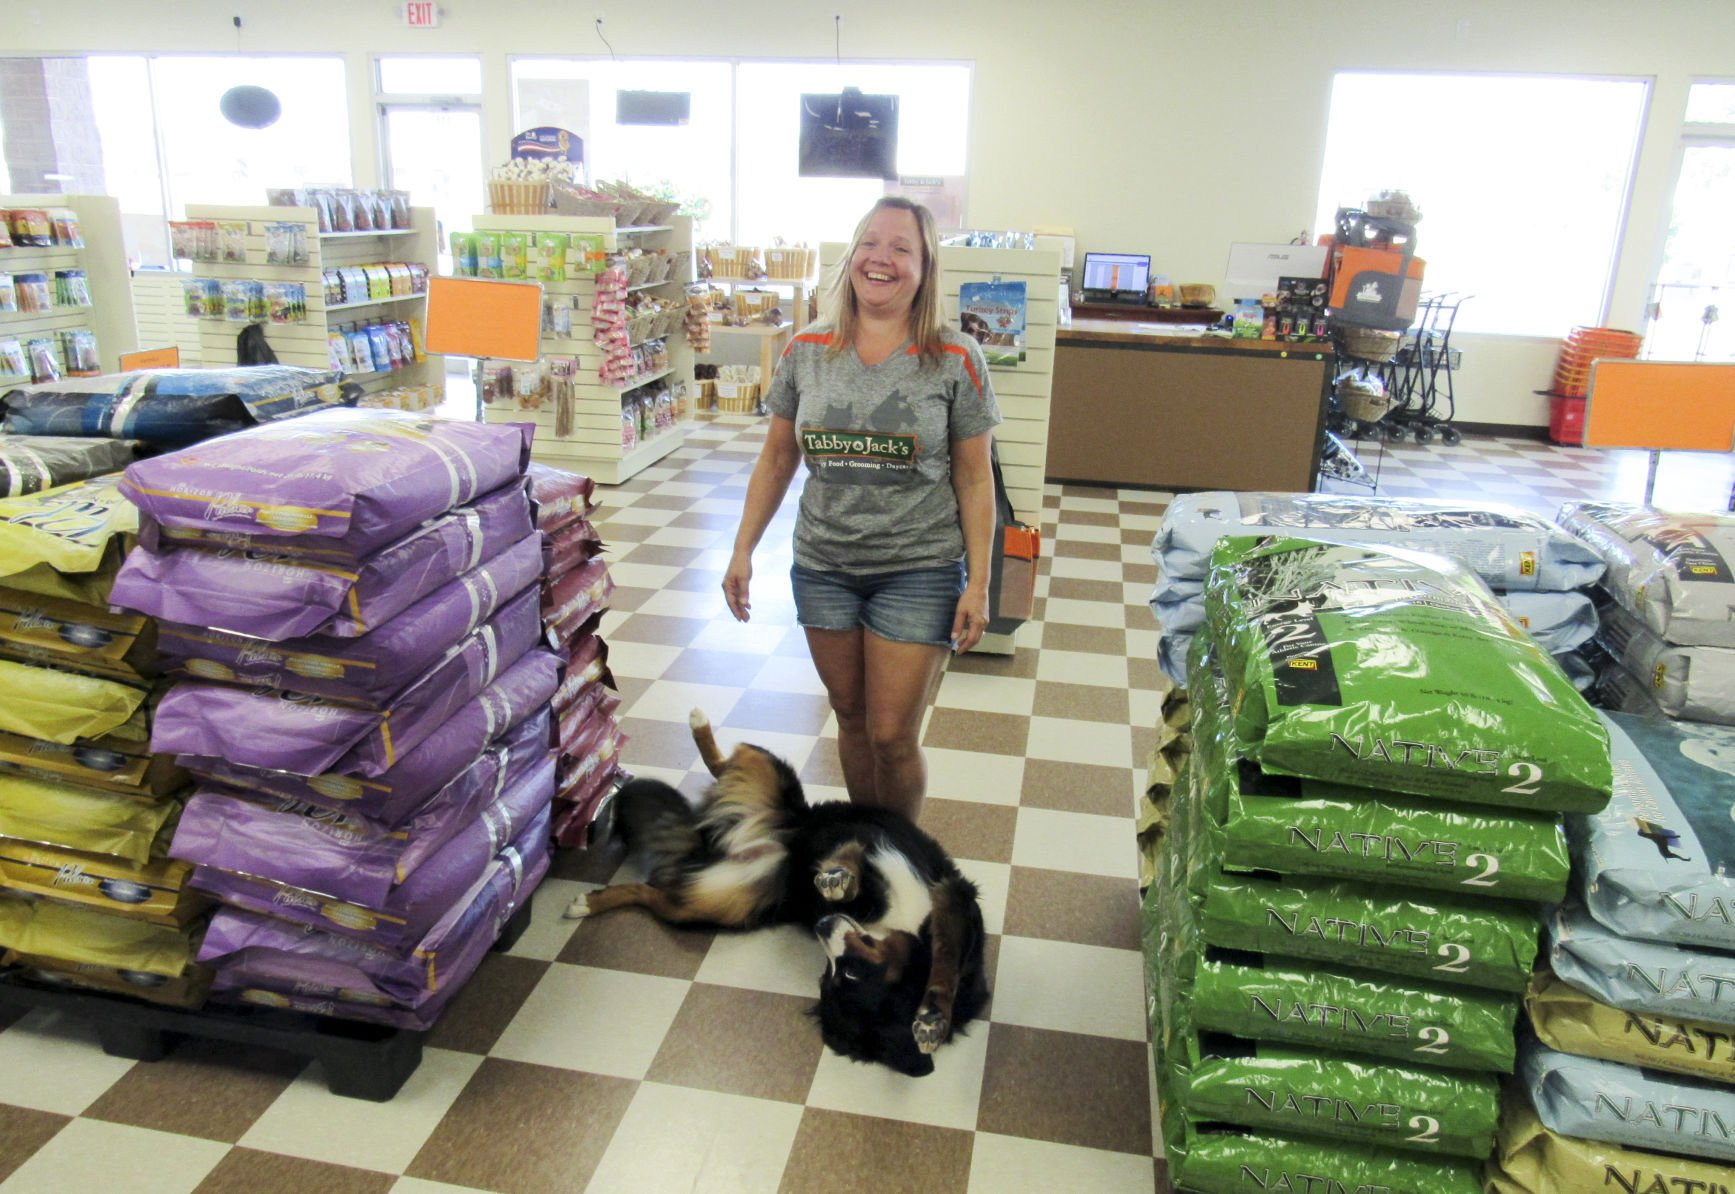 tabby \u0026 jack\u0027s continues to expand its pet supply store presence inmichelle lonergan, owner of tabby \u0026 jack\u0027s, laughs it up in her new stoughton store while her 1 year old bernese mountain dog, maisie, lobbies for a belly